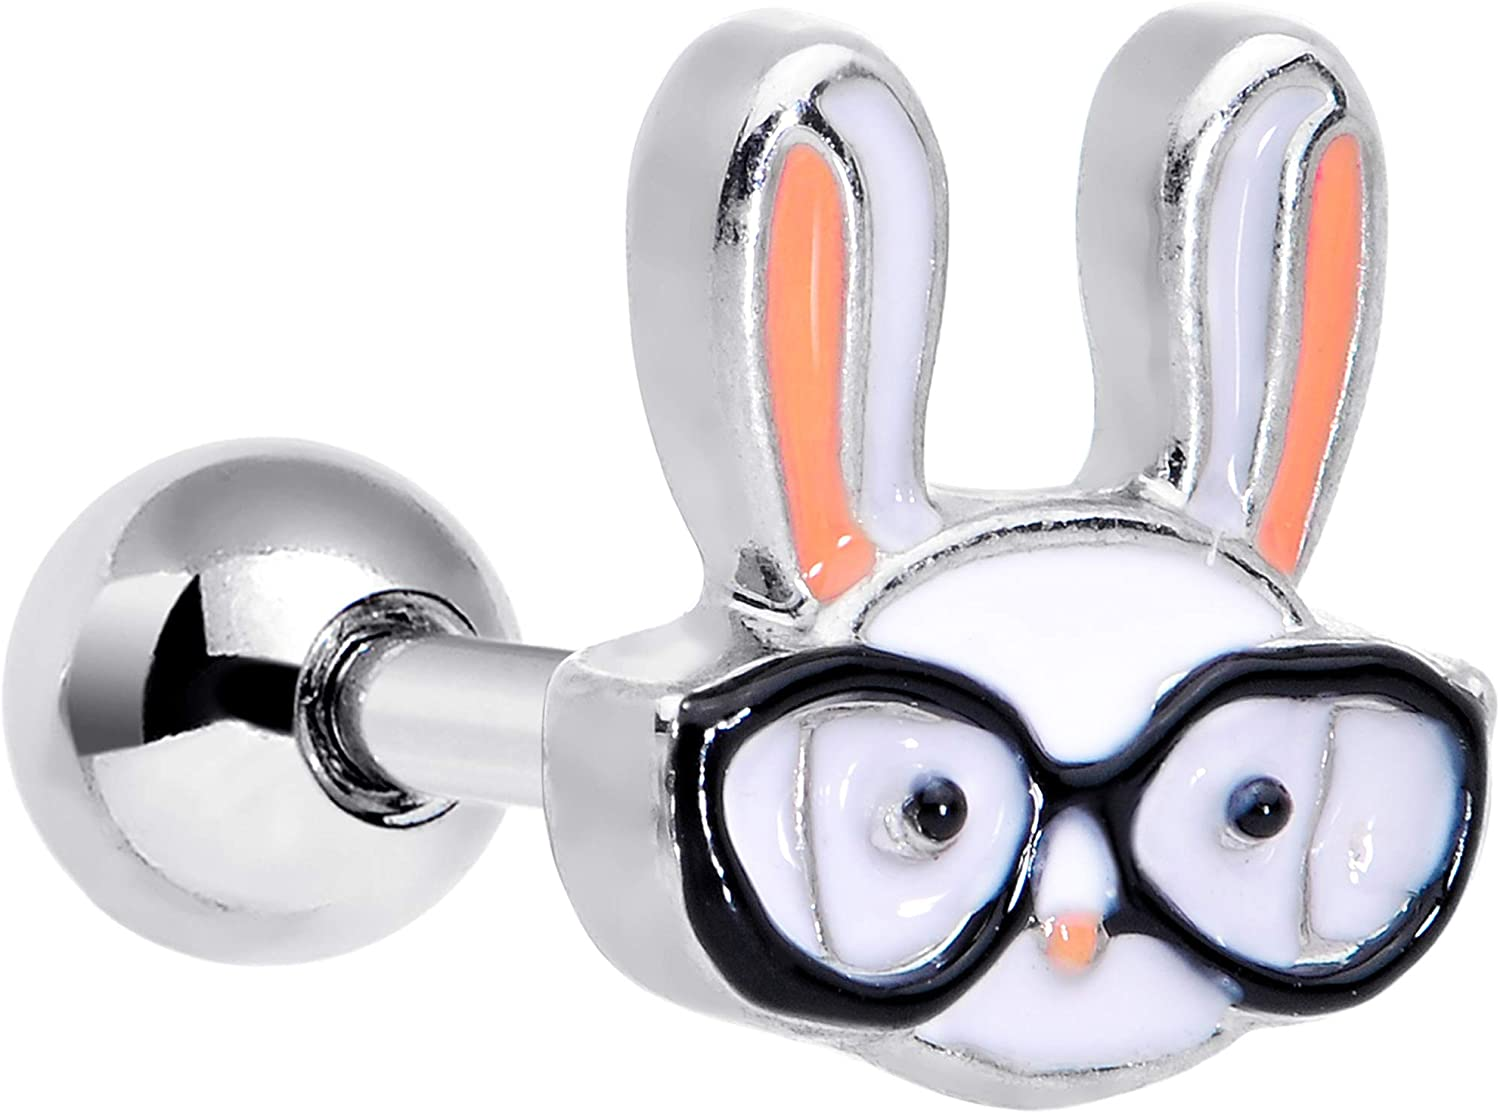 Body Candy 16G Unisex Stainless Steel White Black Nerdy Bunny Rabbit Cartilage Earring Tragus Jewelry 1/4